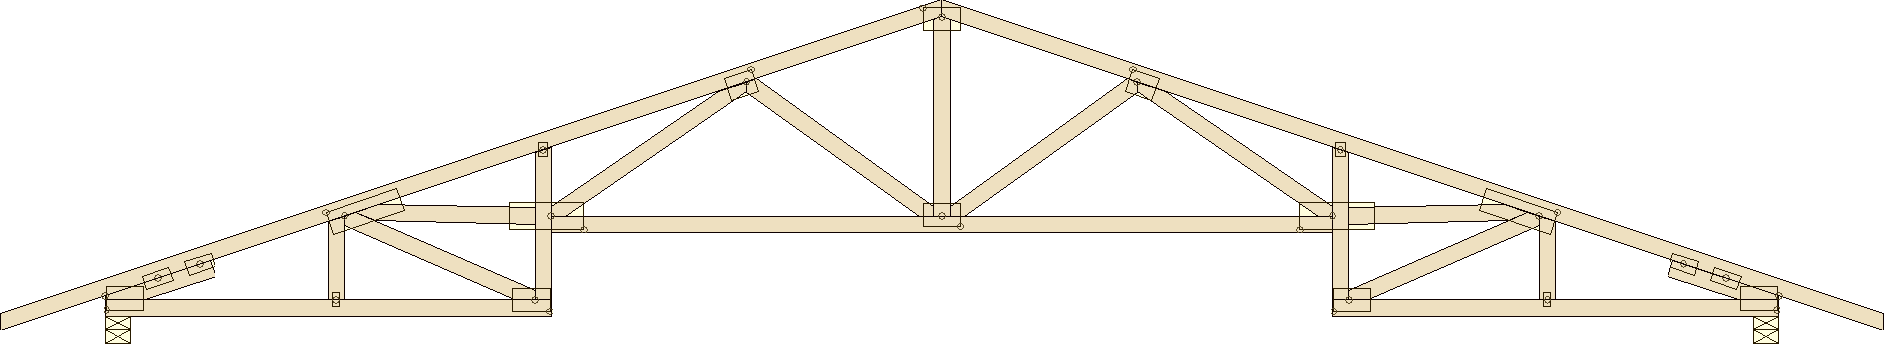 Truss Types Prairie Truss